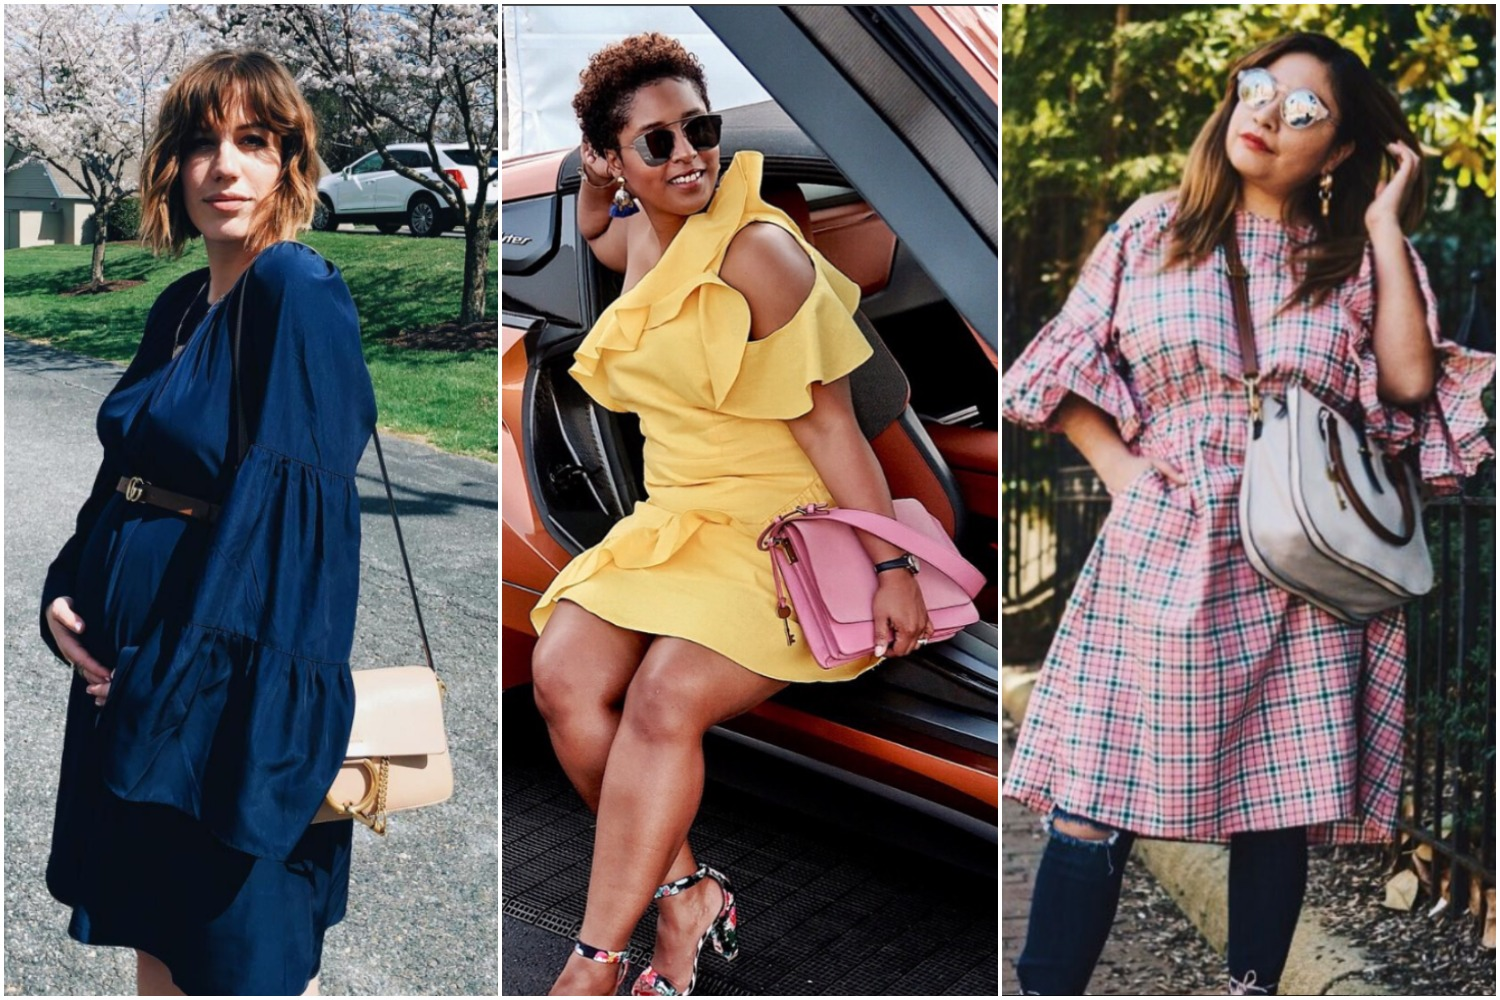 It would be an understatement to say that the weather has been all over the place this spring. Hopefully warmer days are ahead of us, but here are some looks we're looking forward to trying out. (Images: Courtesy Julien Garman, Jen Jean-Pierre and Carlis Sanchez){&nbsp;}<p></p>